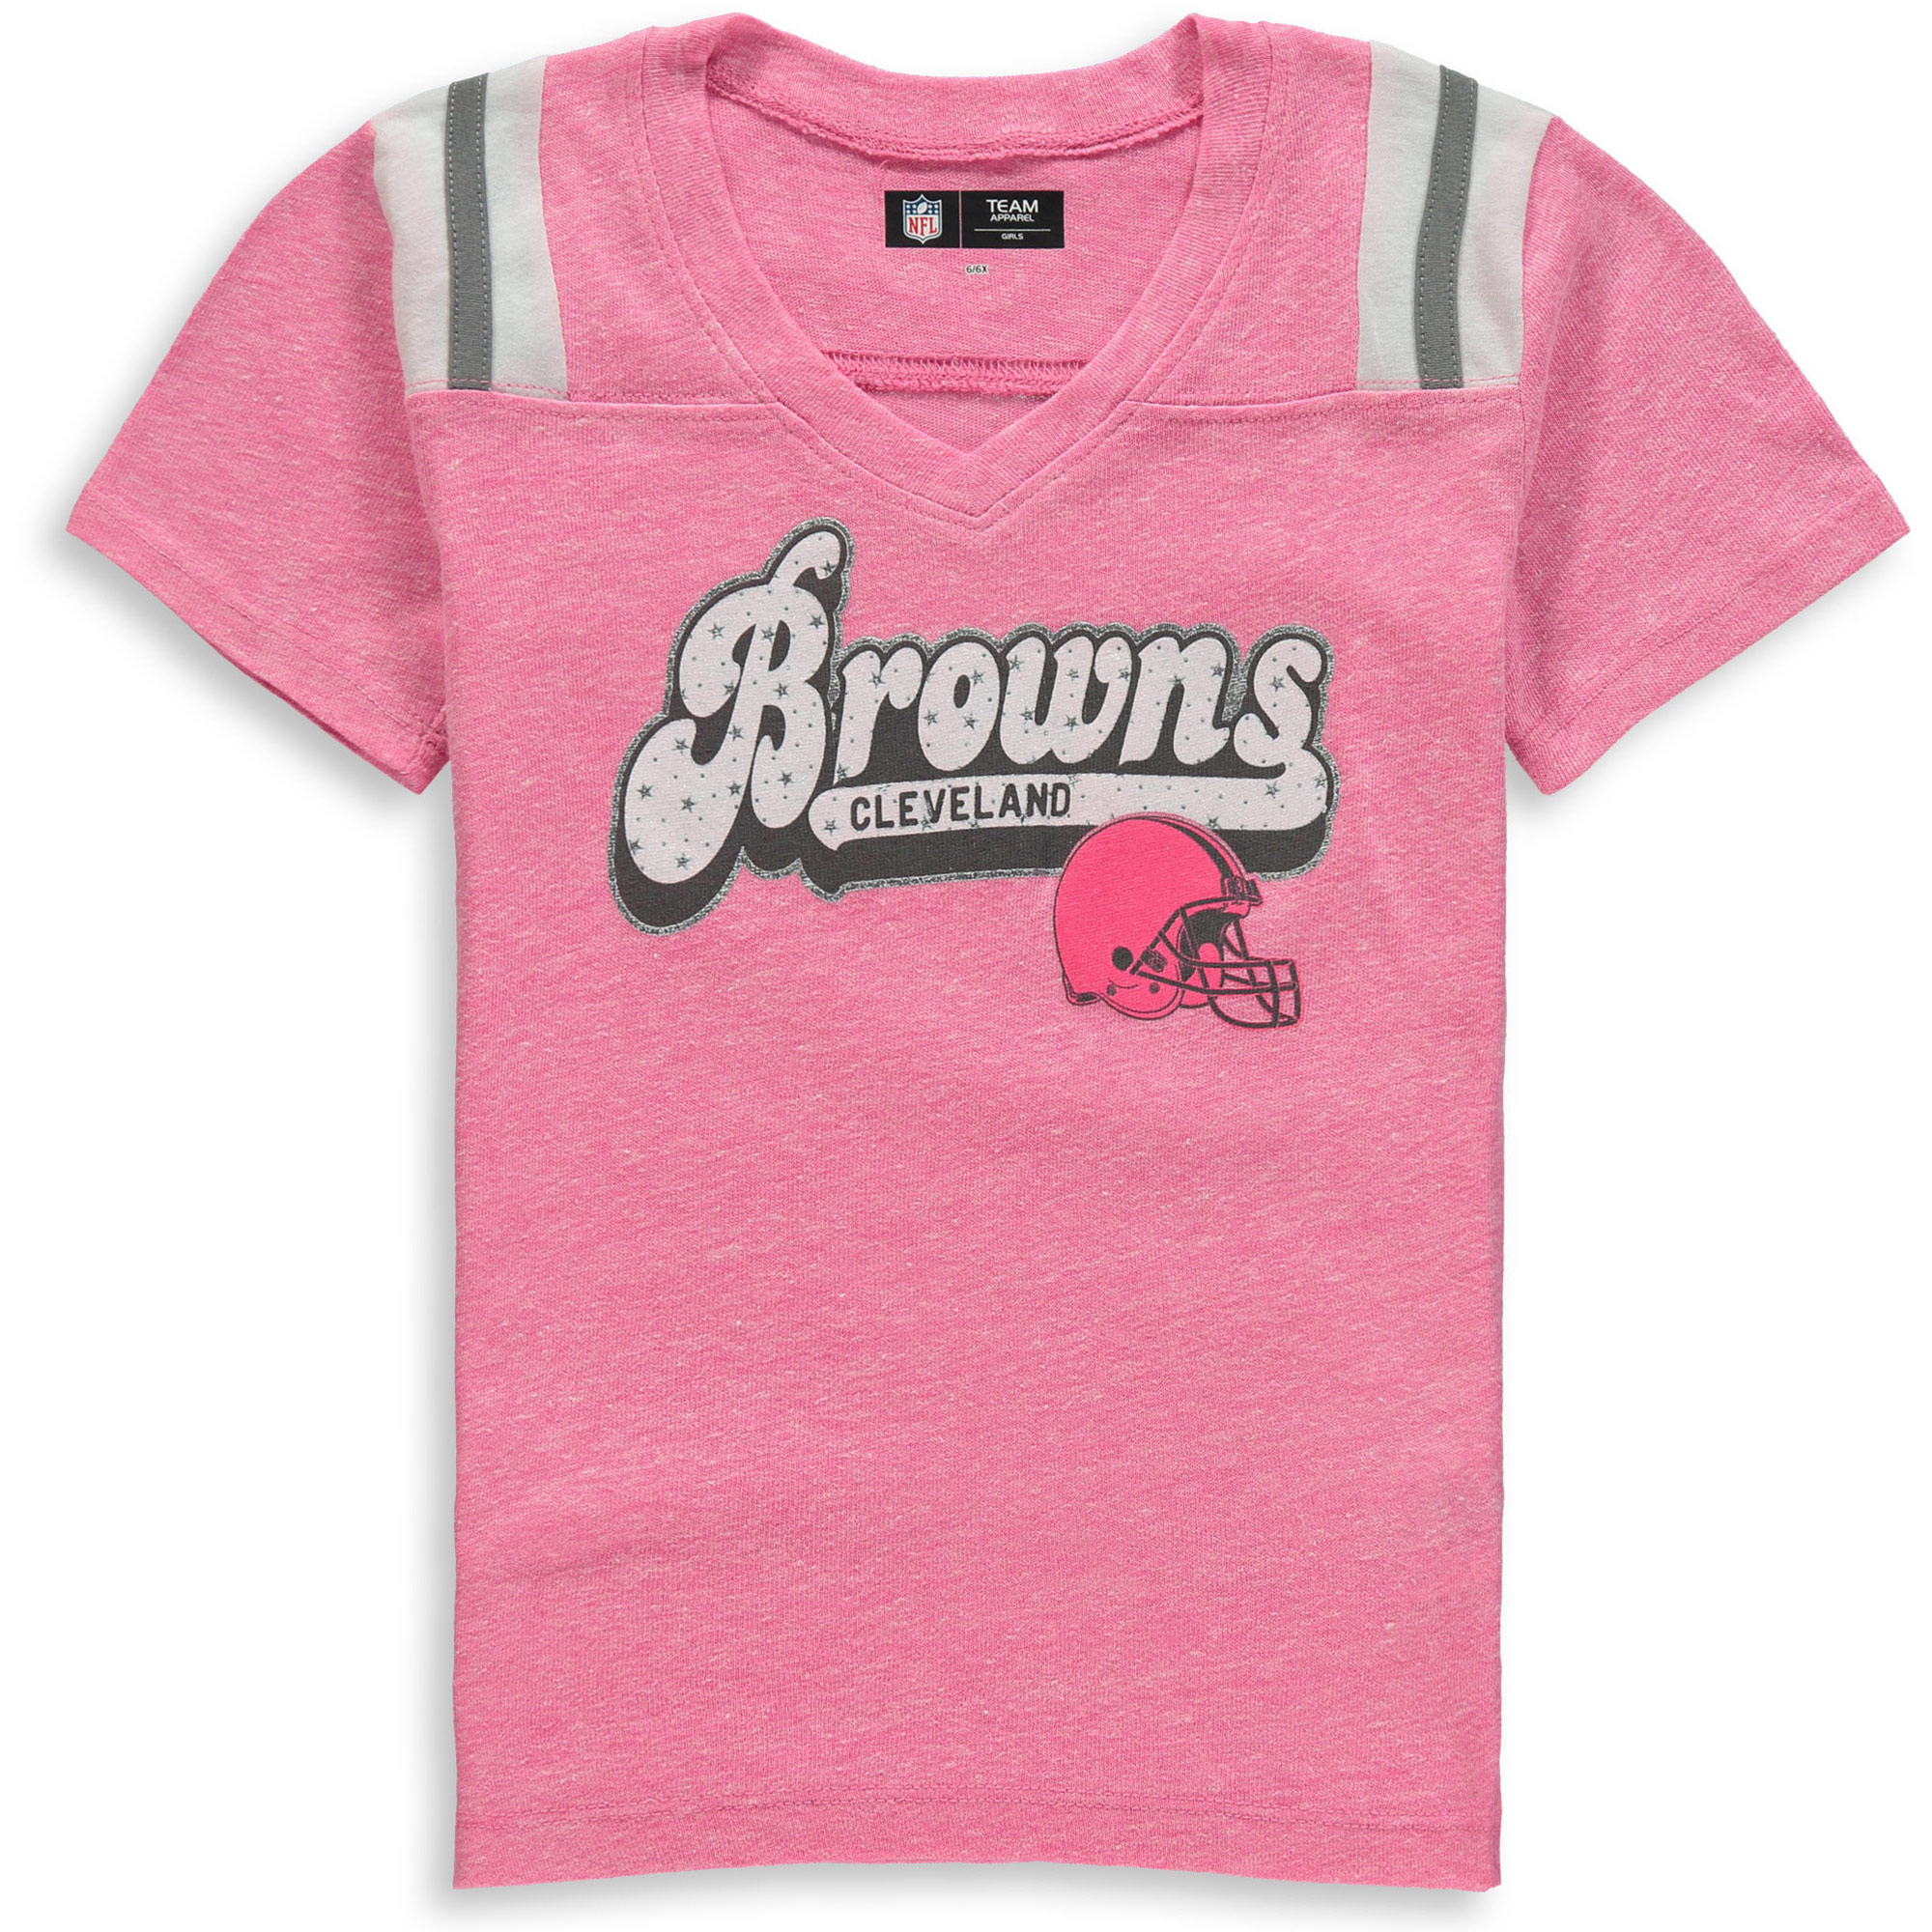 Cleveland Browns New Era Girls Youth Star of the Game Tri-Blend T-Shirt - Pink - Yth XL